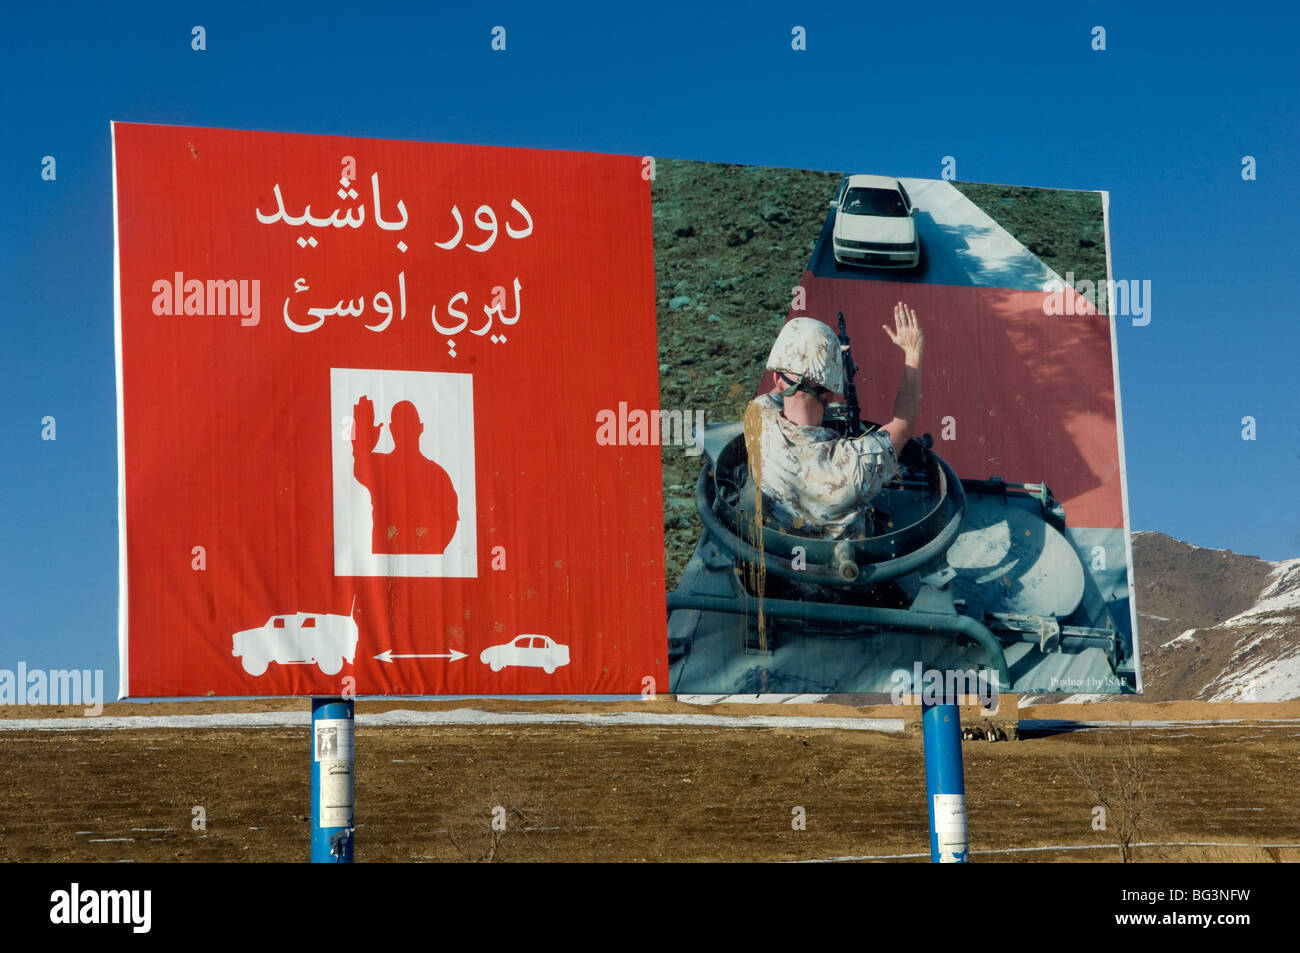 Afghan woman in burka walks past an ISAF military stop sign in Kabul city, Afghanistan. - Stock Image